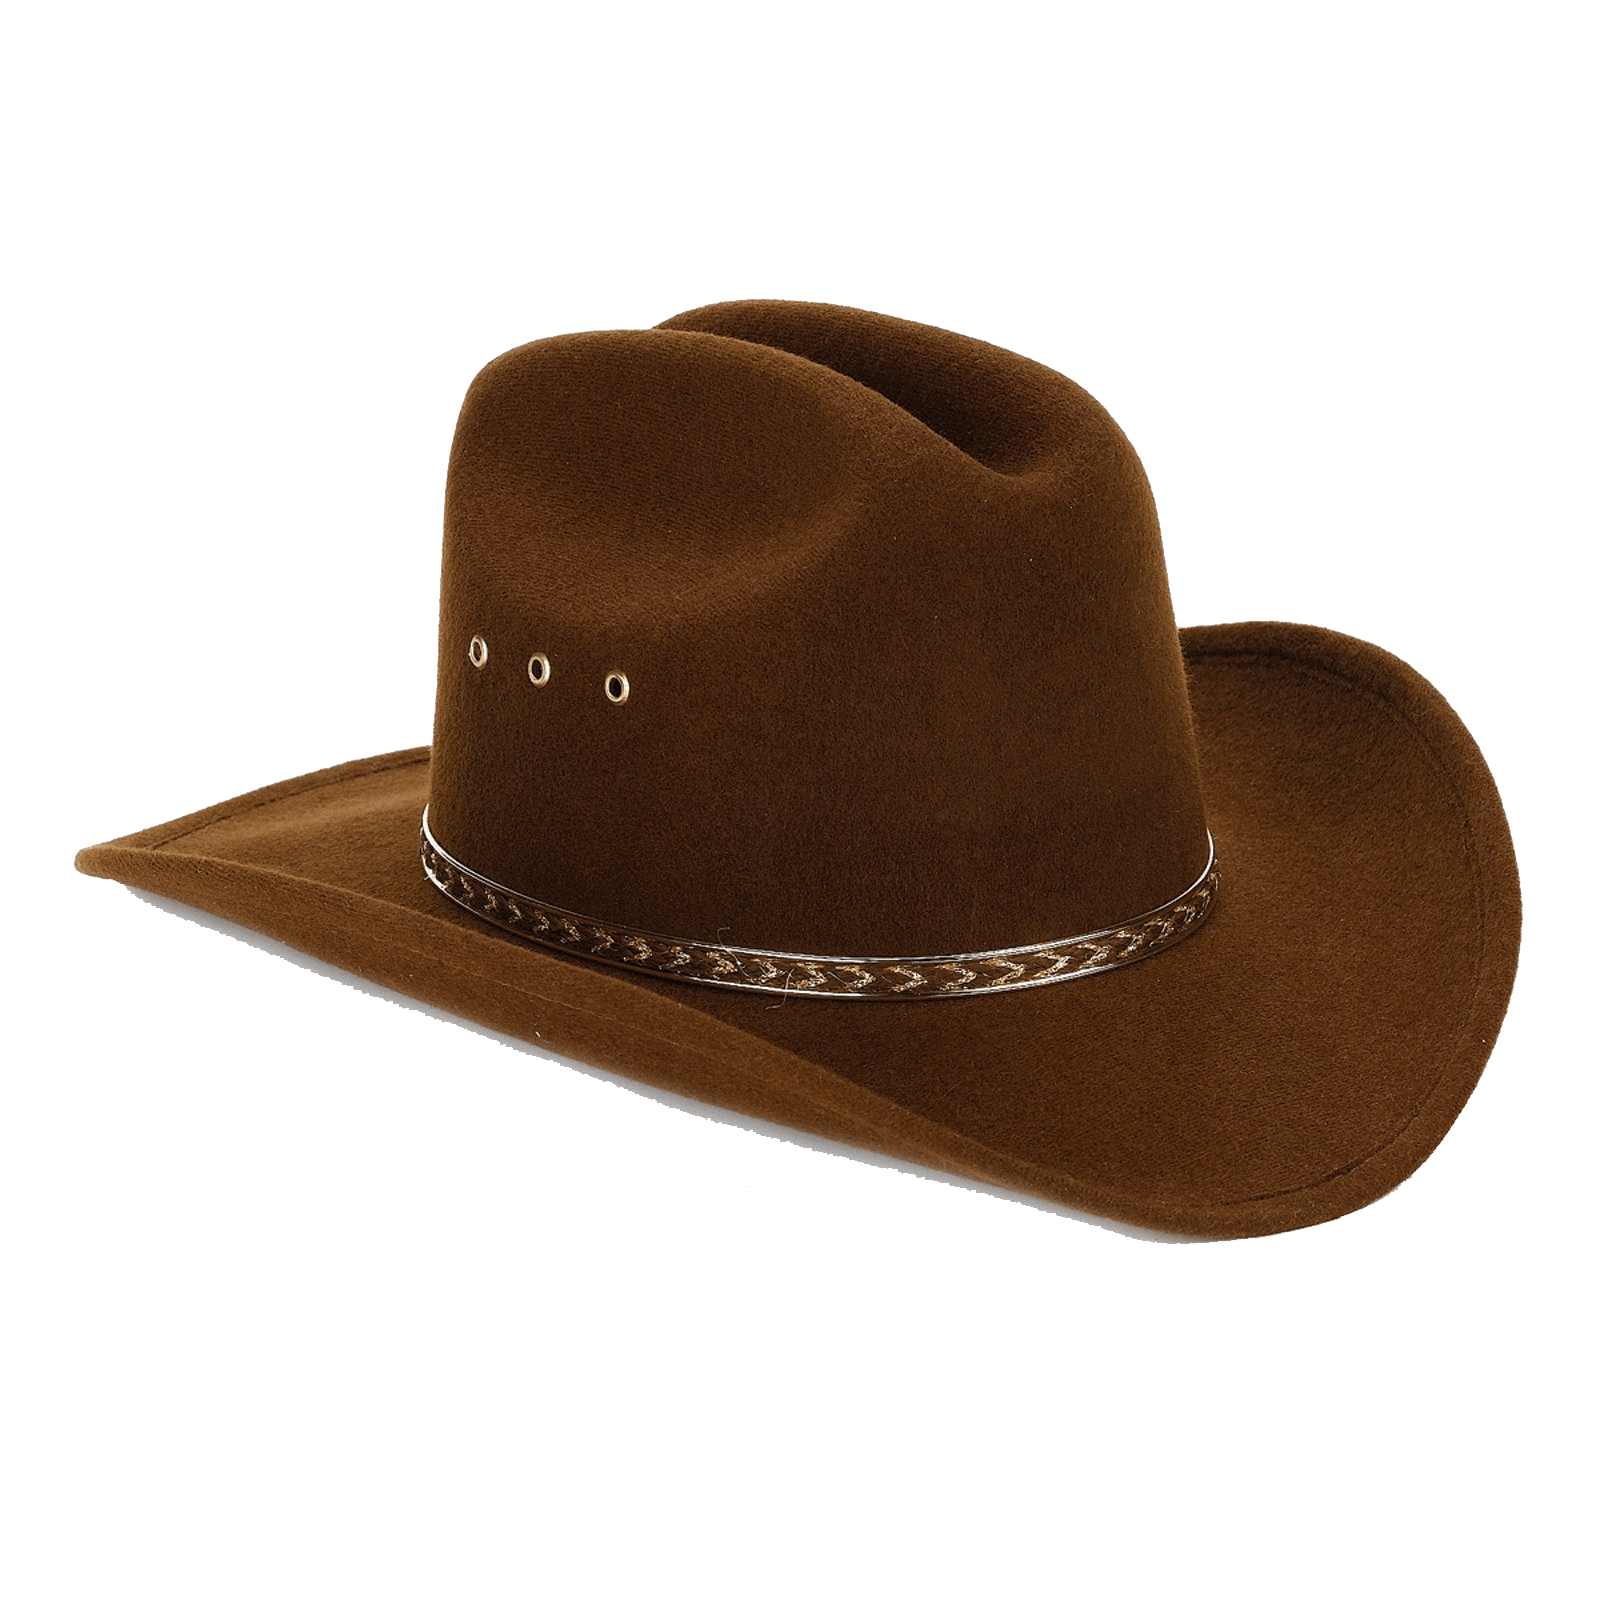 Brown cowboy hat png. Felt transparent stickpng